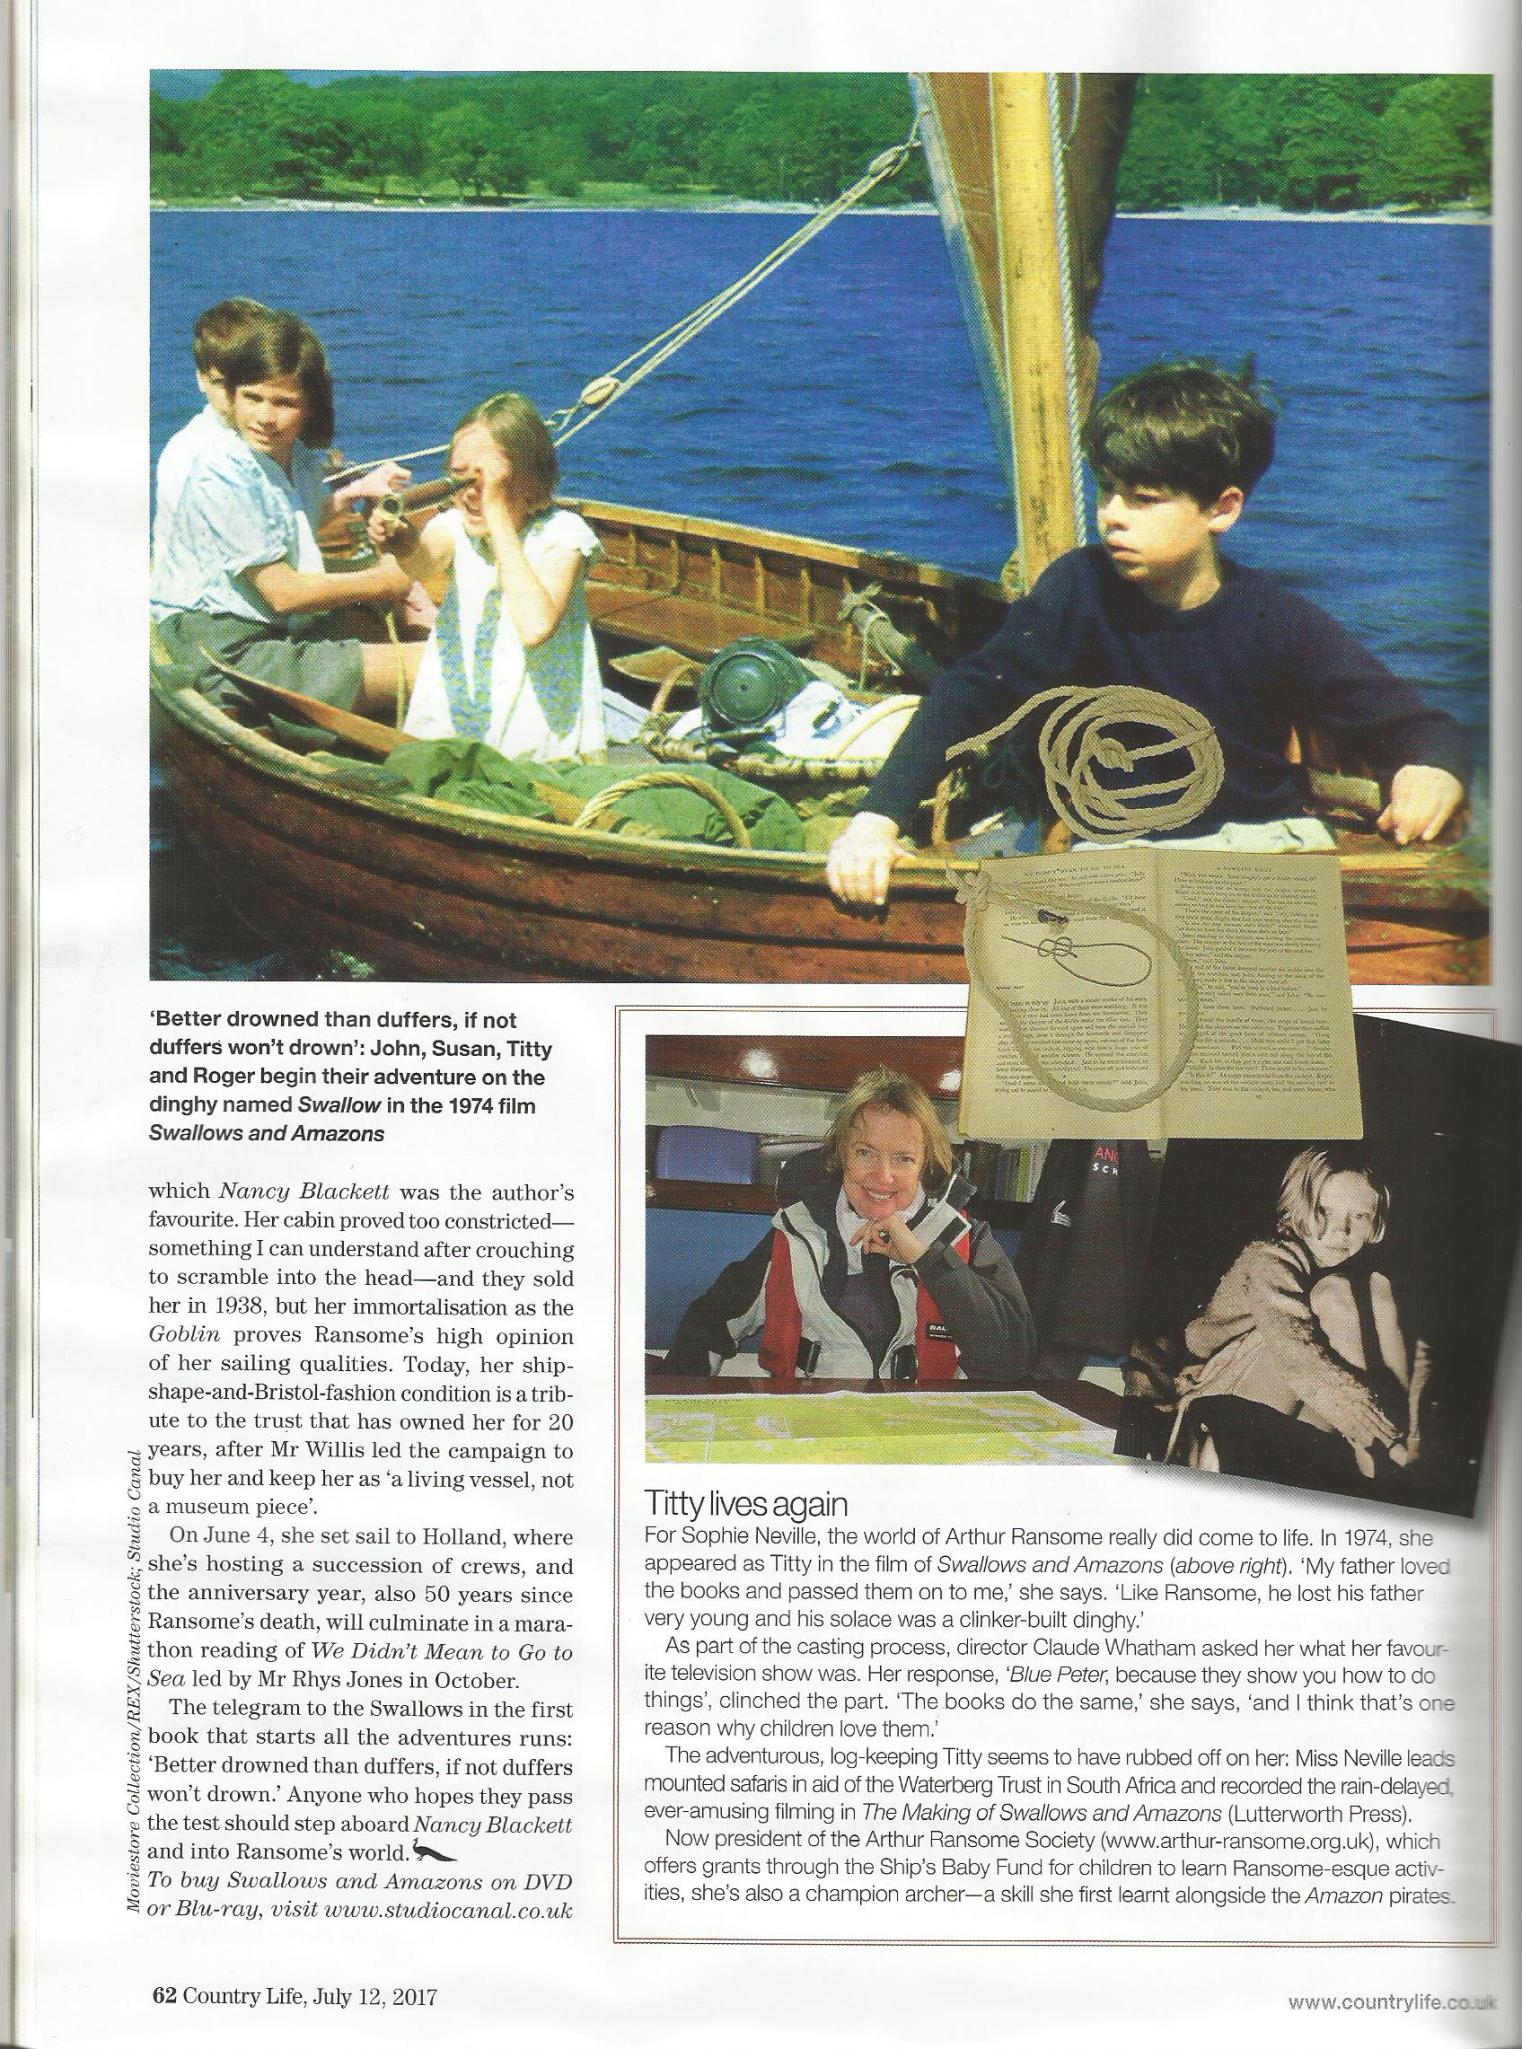 Sophie Neville profiled in Country Life magazine 12 July 2017